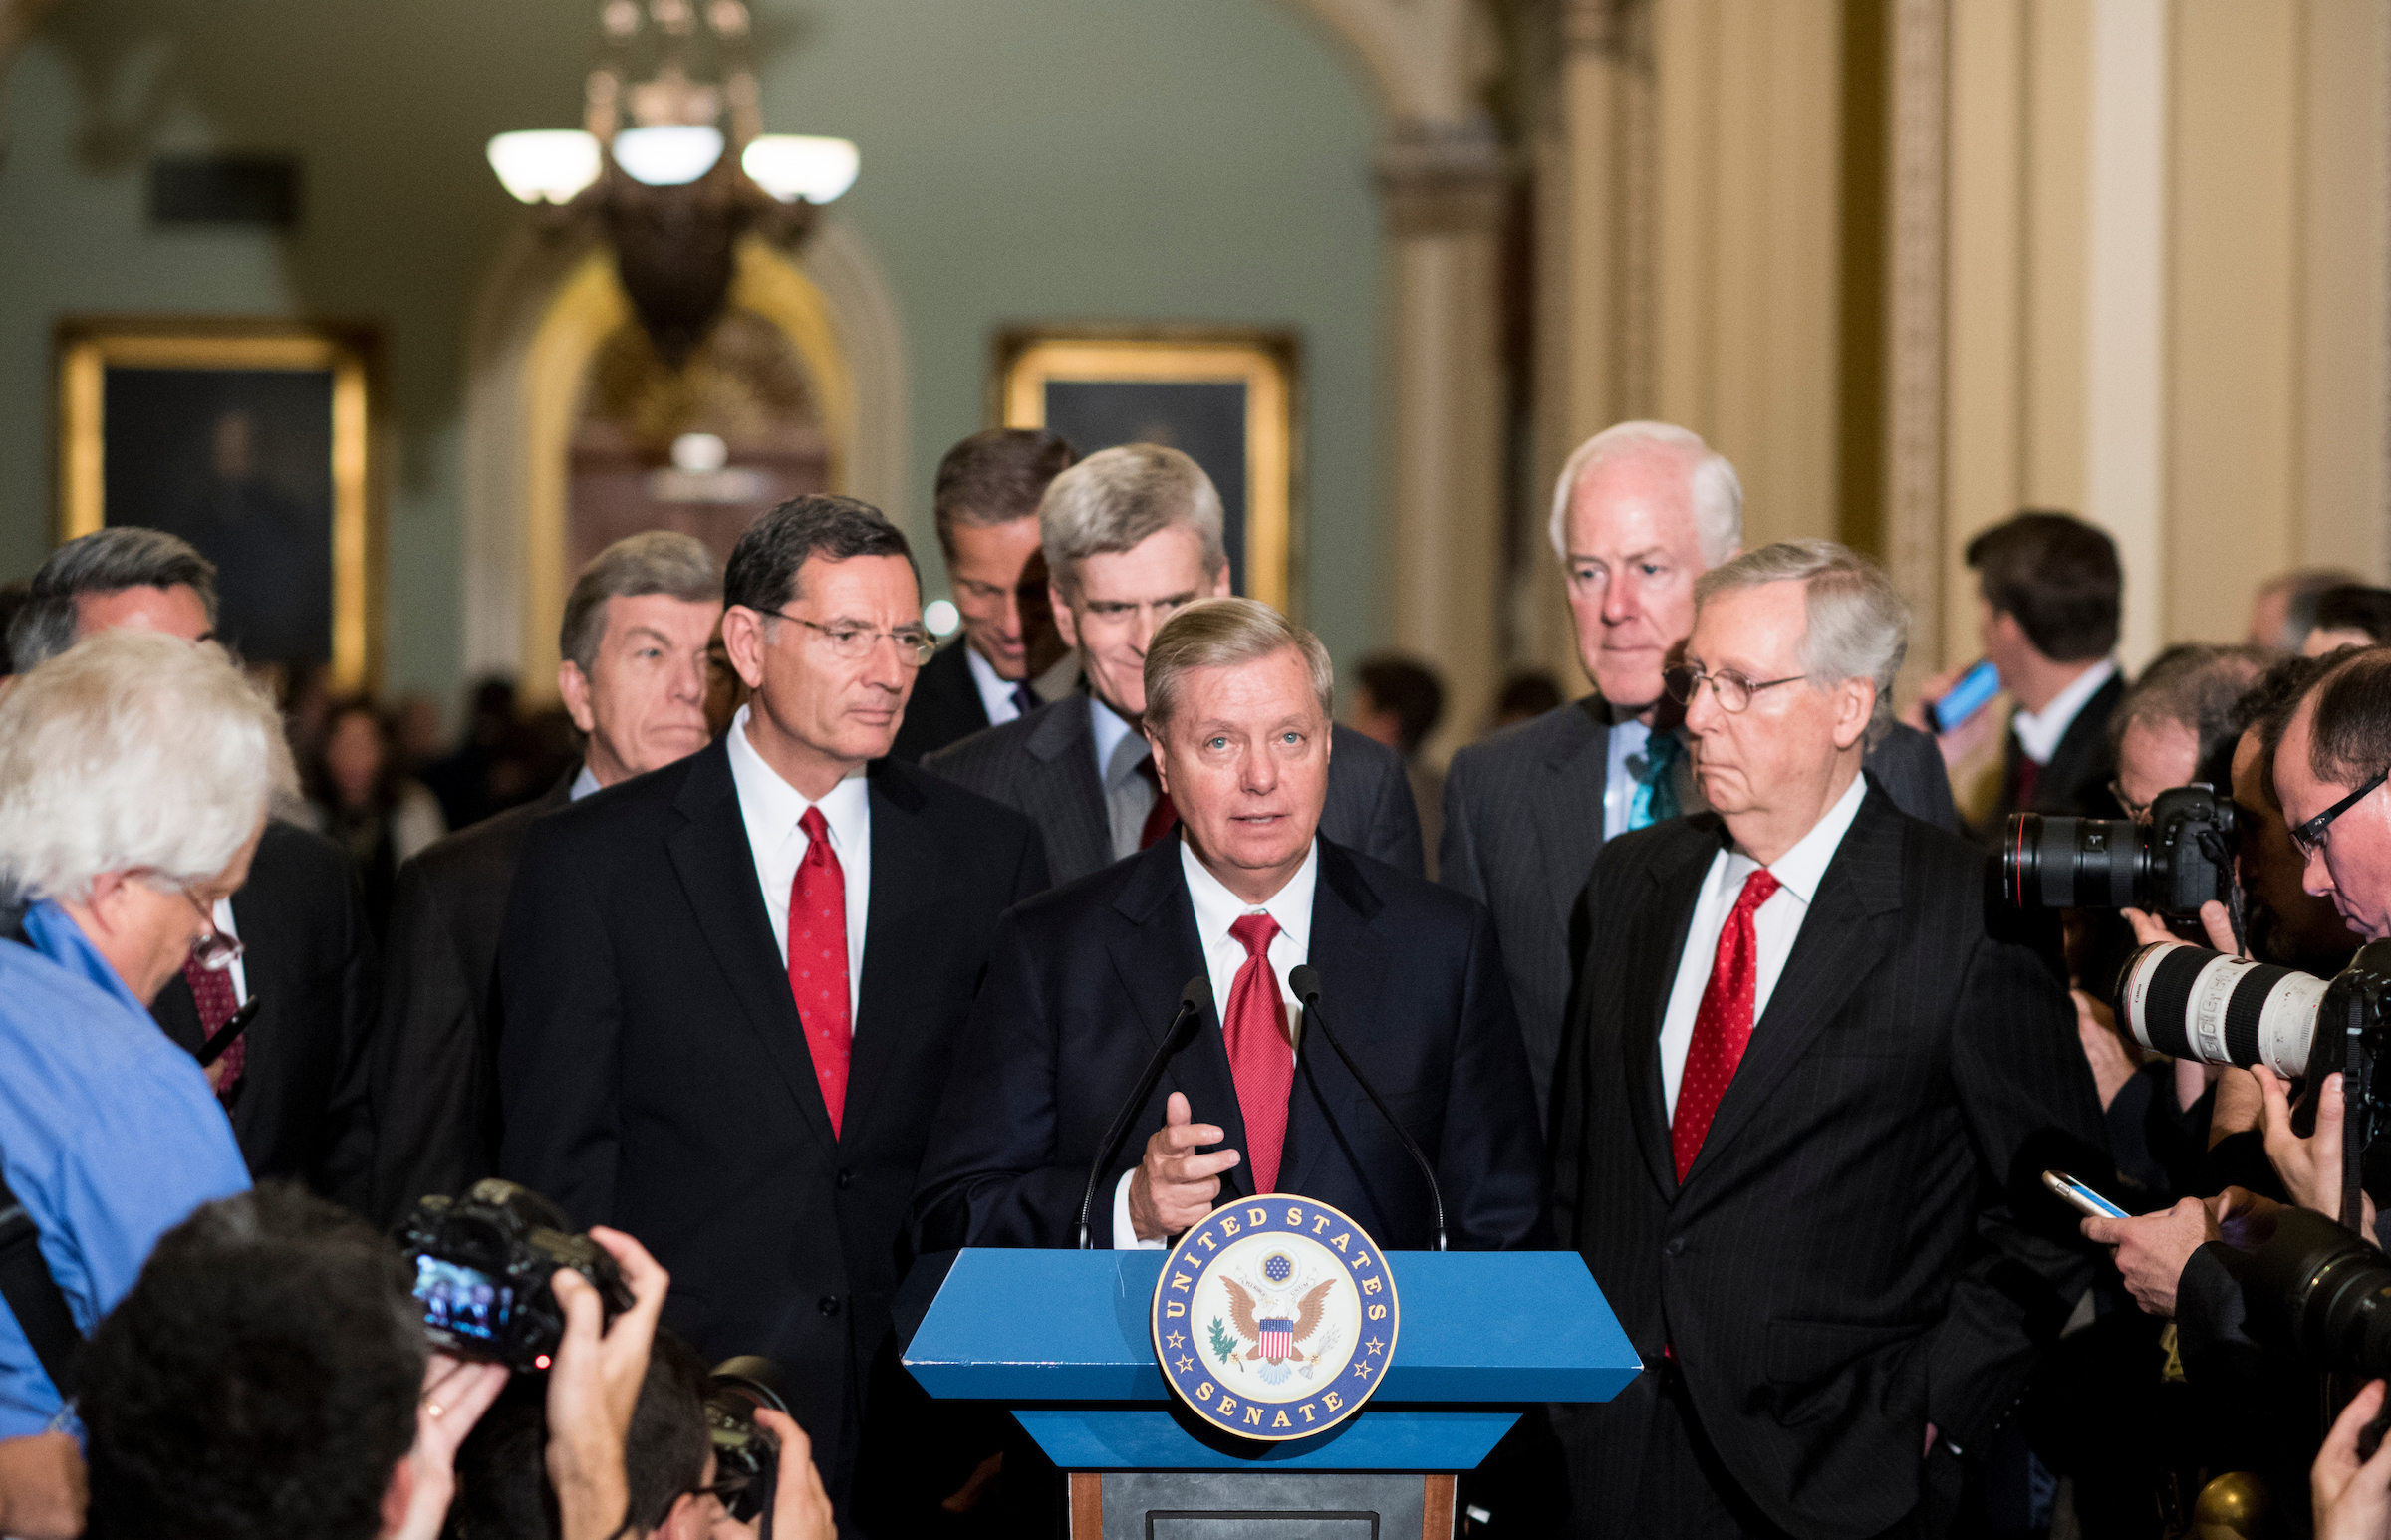 UNITED STATES - SEPTEMBER 26: Sen. Lindsey Graham, R-S.C., flanked from left by Sen. Roy Blunt, R-Mo., Sen. John Barrasso, R-Wyo., Sen. John Thune, R-S. Dak., Sen. Bill Cassidy, R-La., Sen. John Cornyn, R-Texas, and Senate Majority Leader Mitch McConnell, R-Ky., speaks to reporters about the GOP health care bill following the Senate Republicans' policy lunch on Tuesday, Sept. 26, 2017. (Photo By Bill Clark/CQ Roll Call)